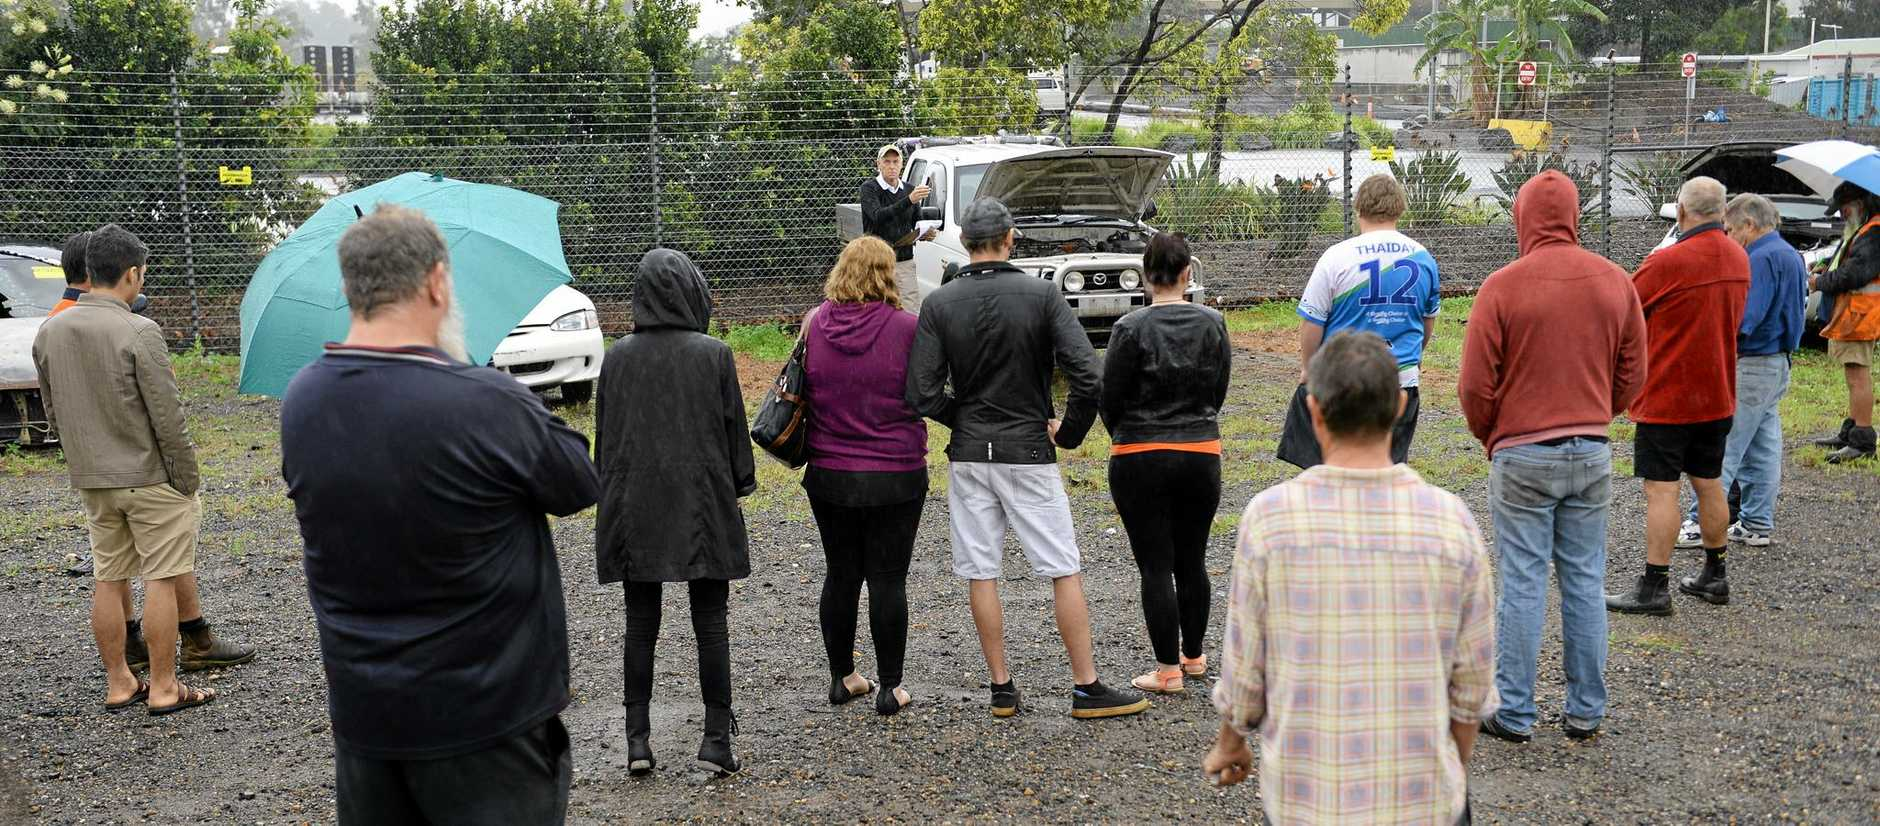 A decent crowd turned out for the Ipswich City Council public auction of abandoned vehicles.